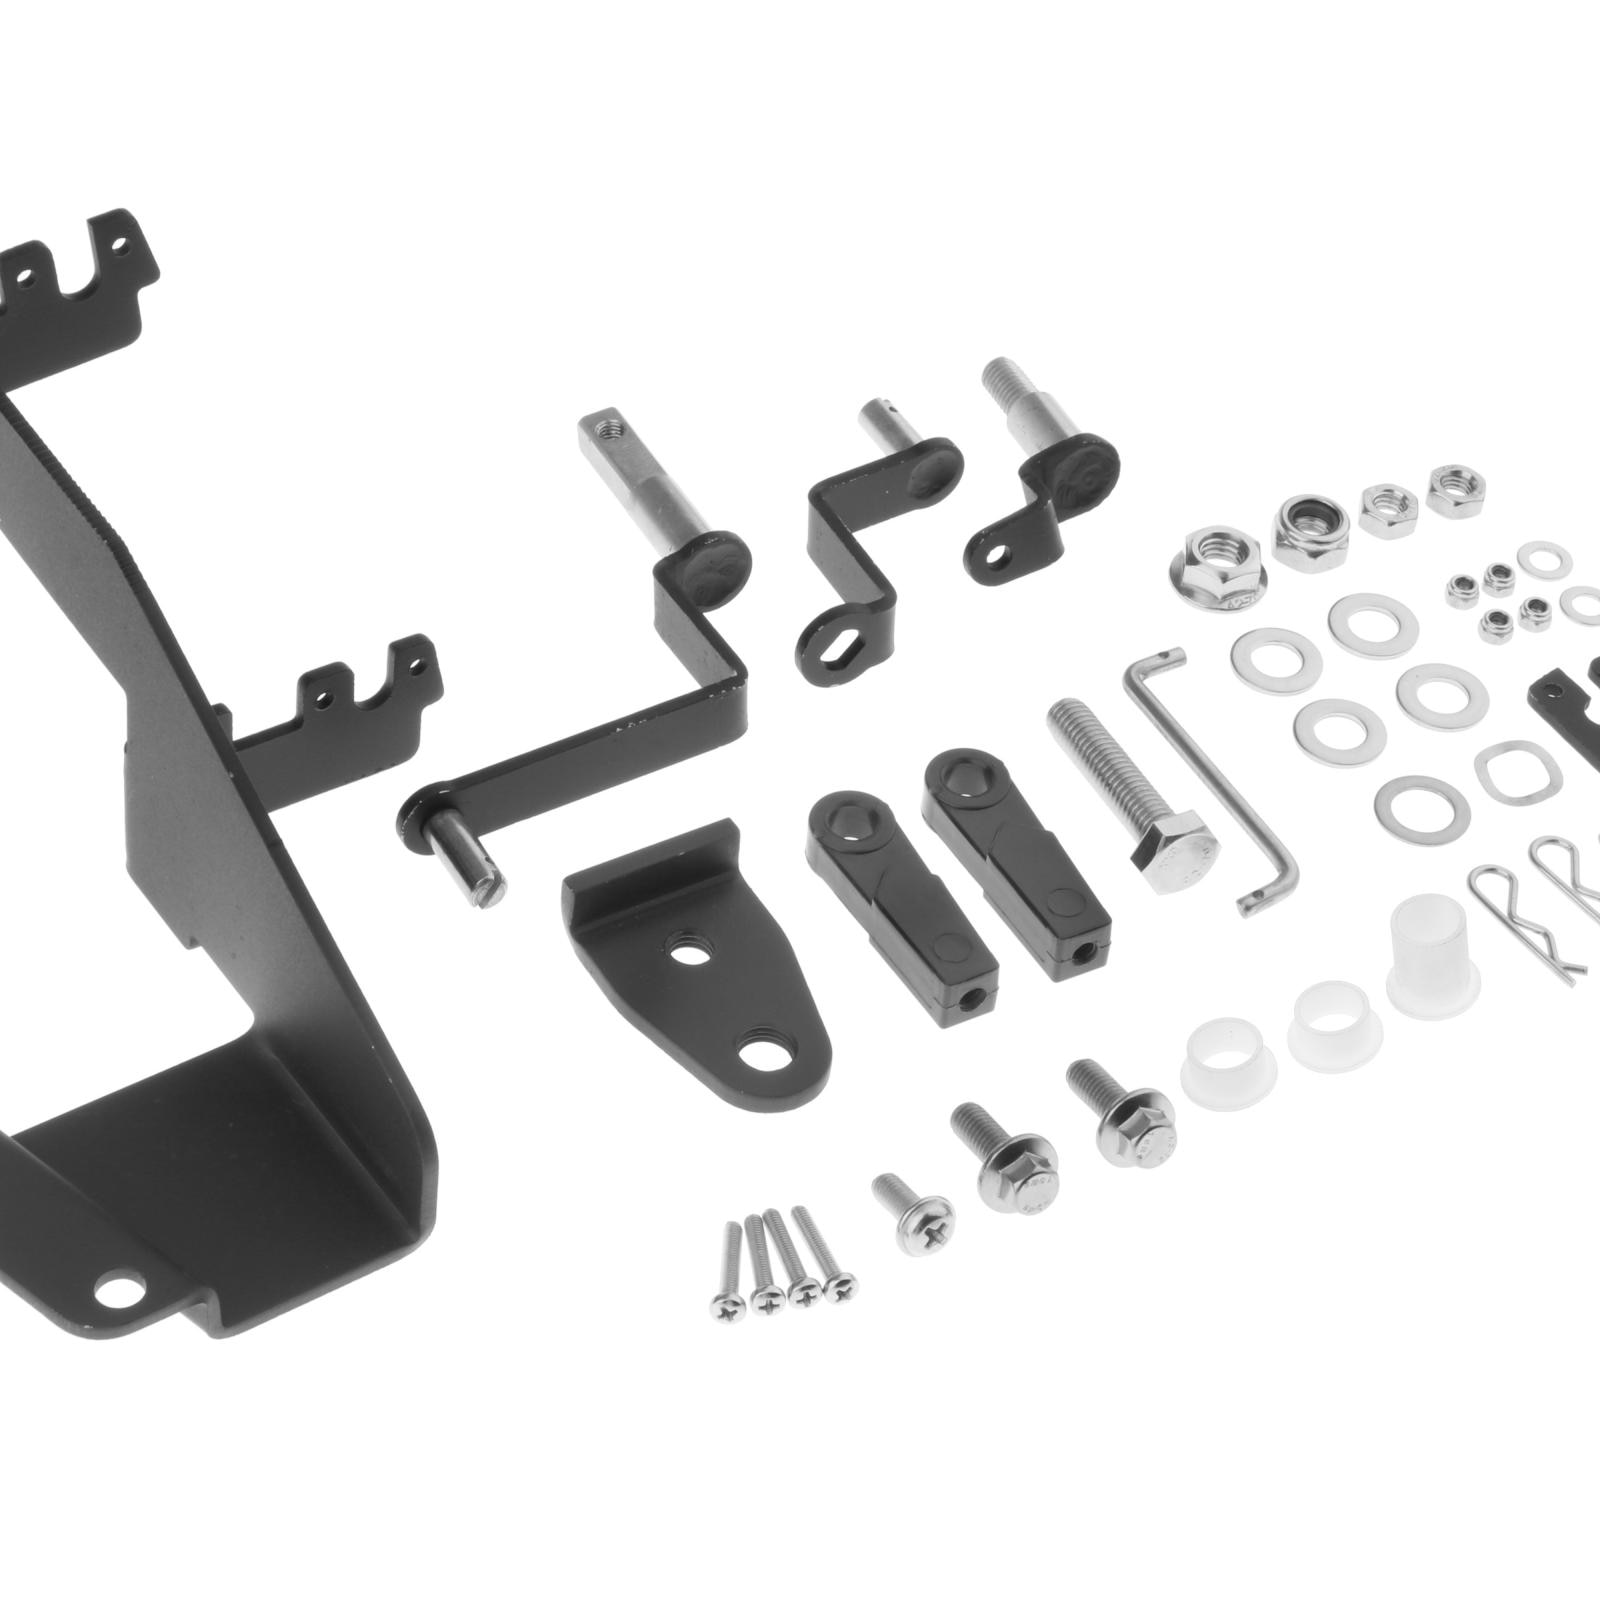 Remote Control Attachment Kit For Yamaha Outboard 15HP Pro  D-Modern enlarge